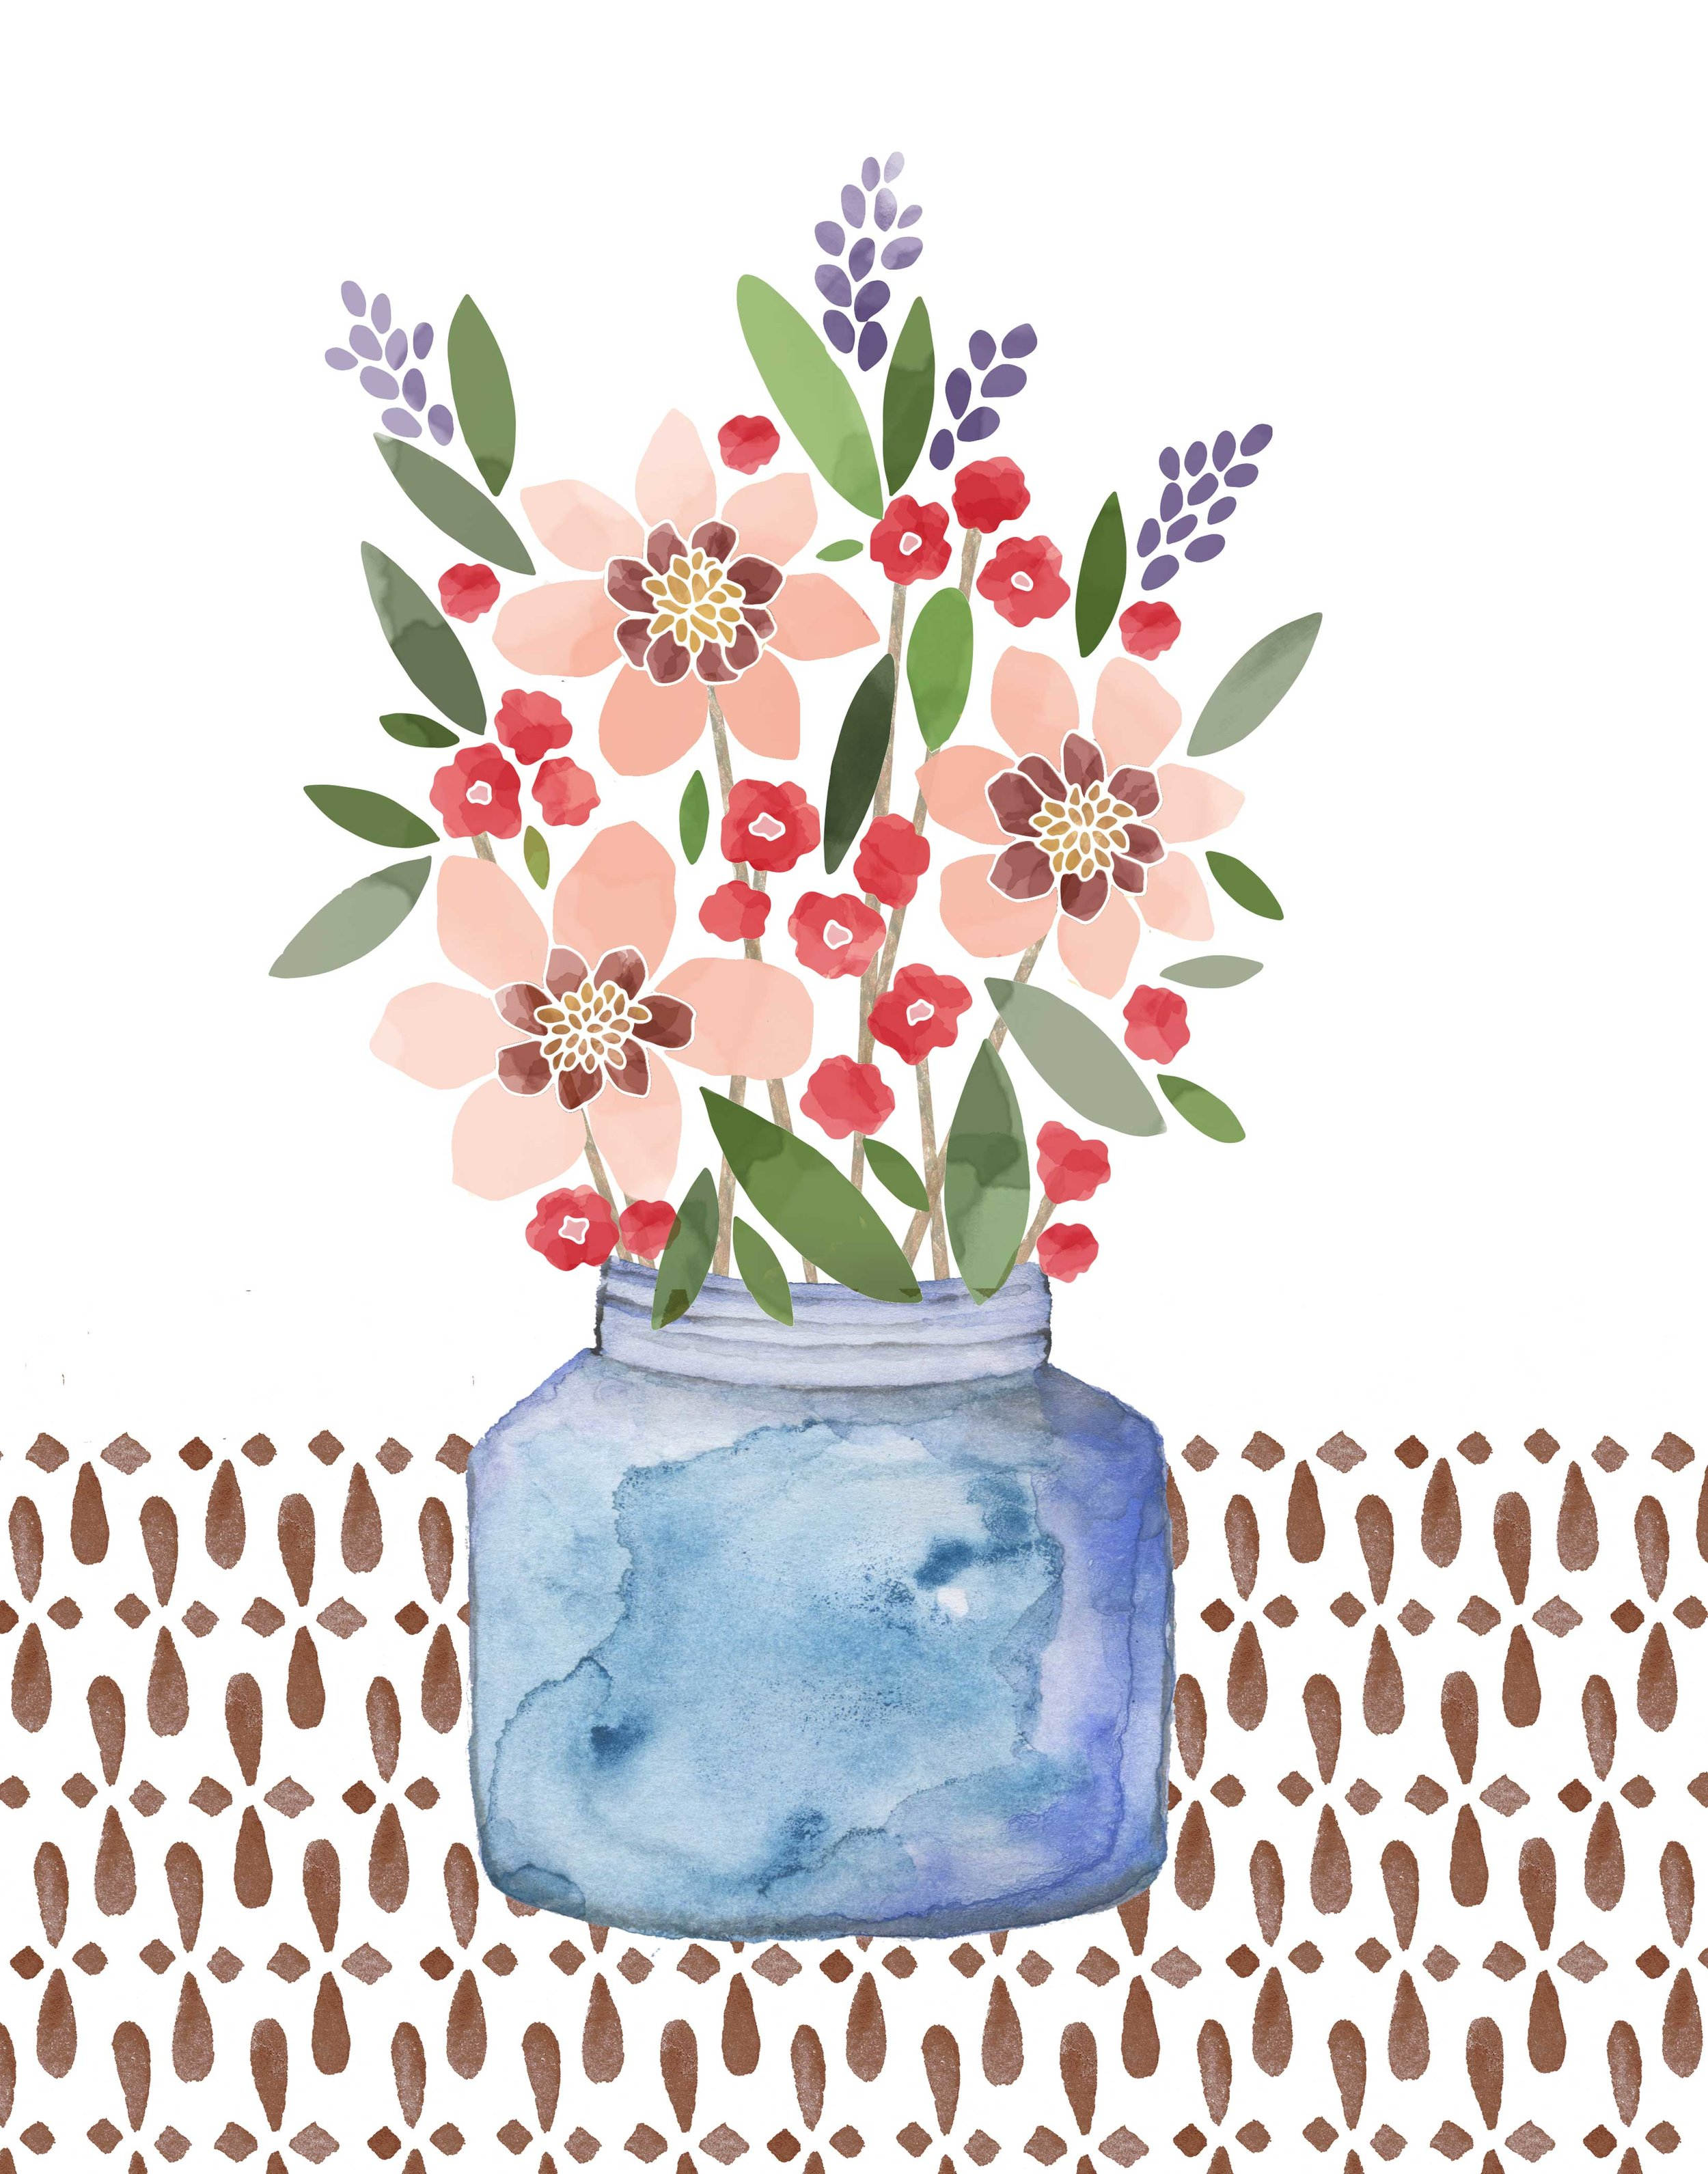 Elizatodd flowers in glass vase